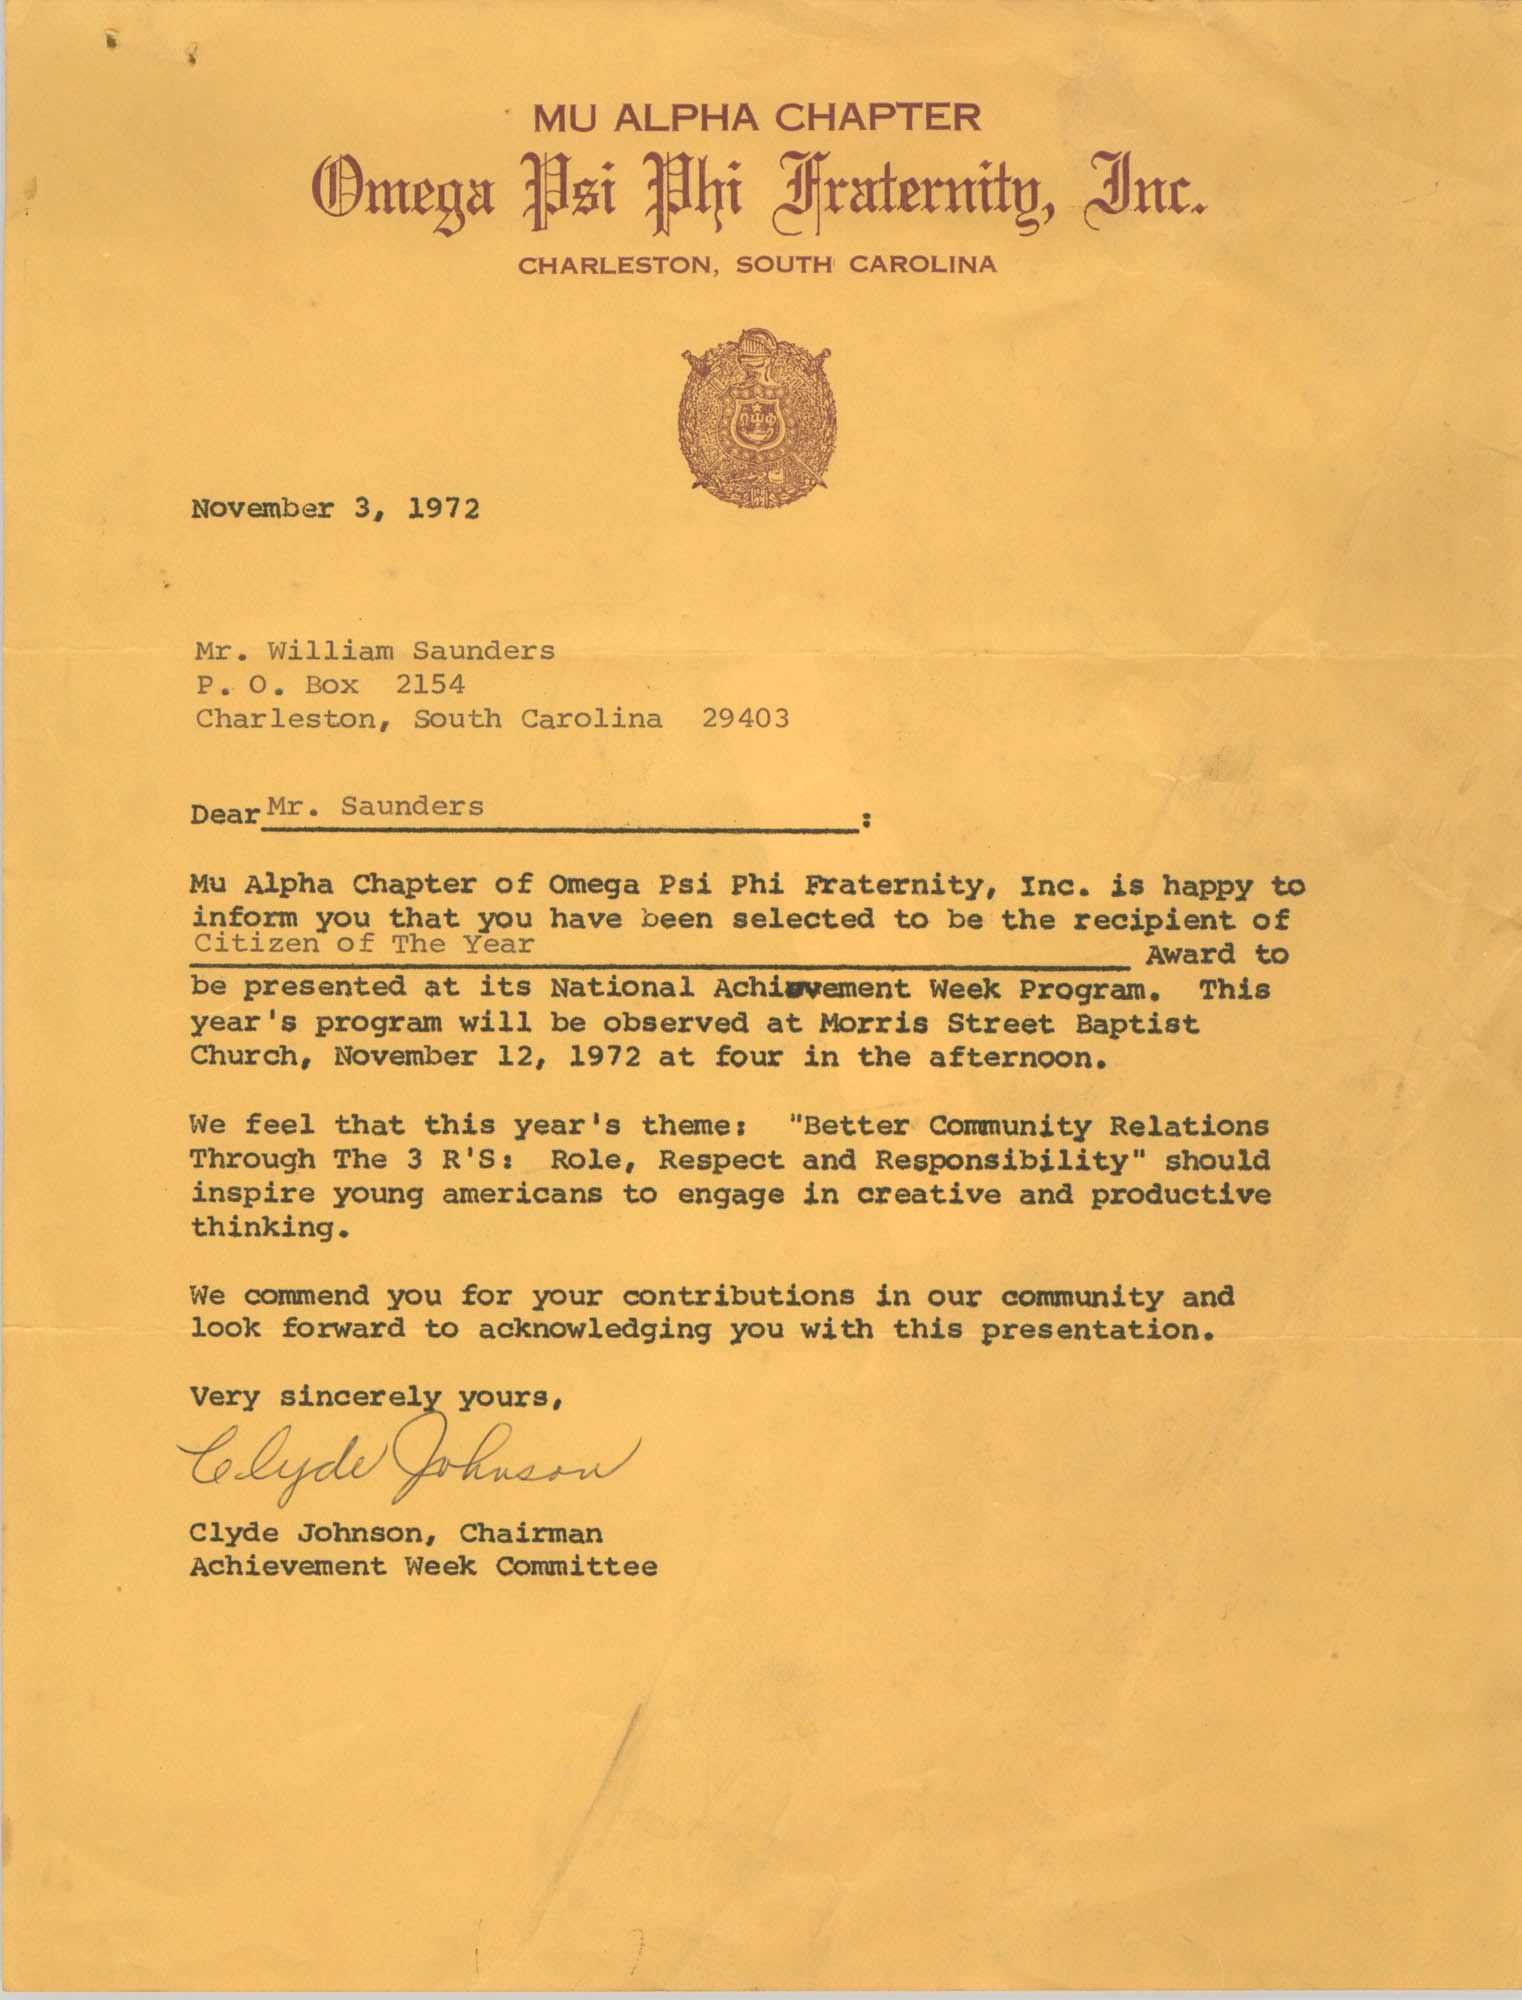 Letter from Clyde Johnson to William Saunders, November 3, 1972